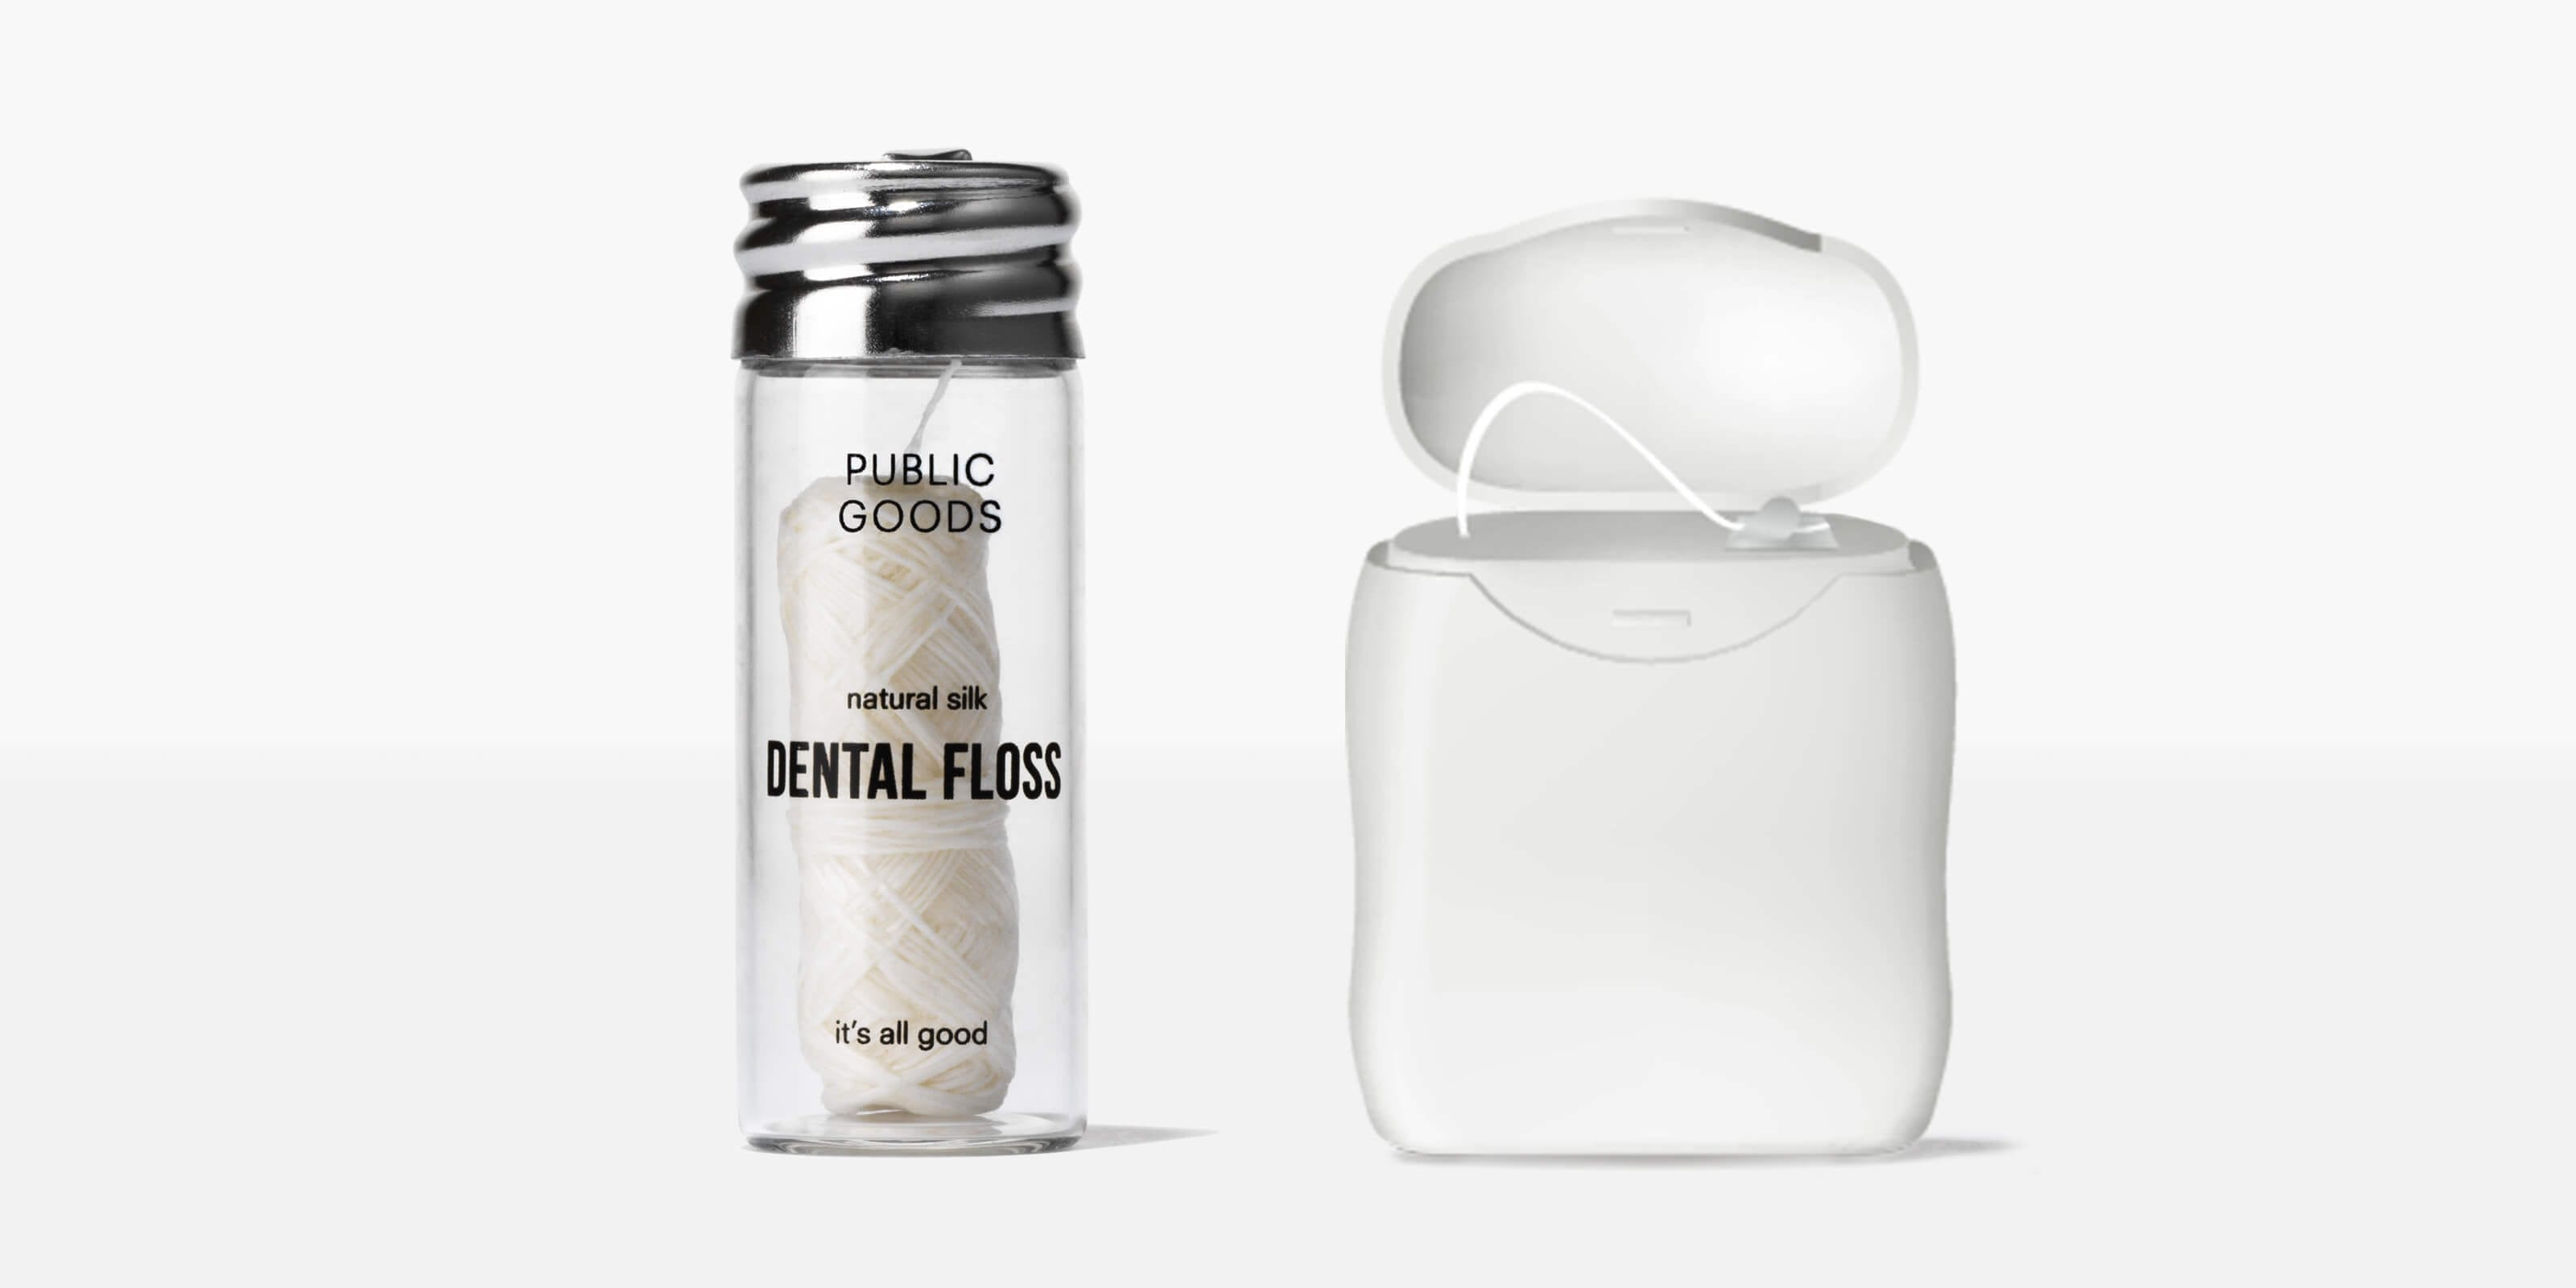 public goods silk dental floss, traditional plastic container